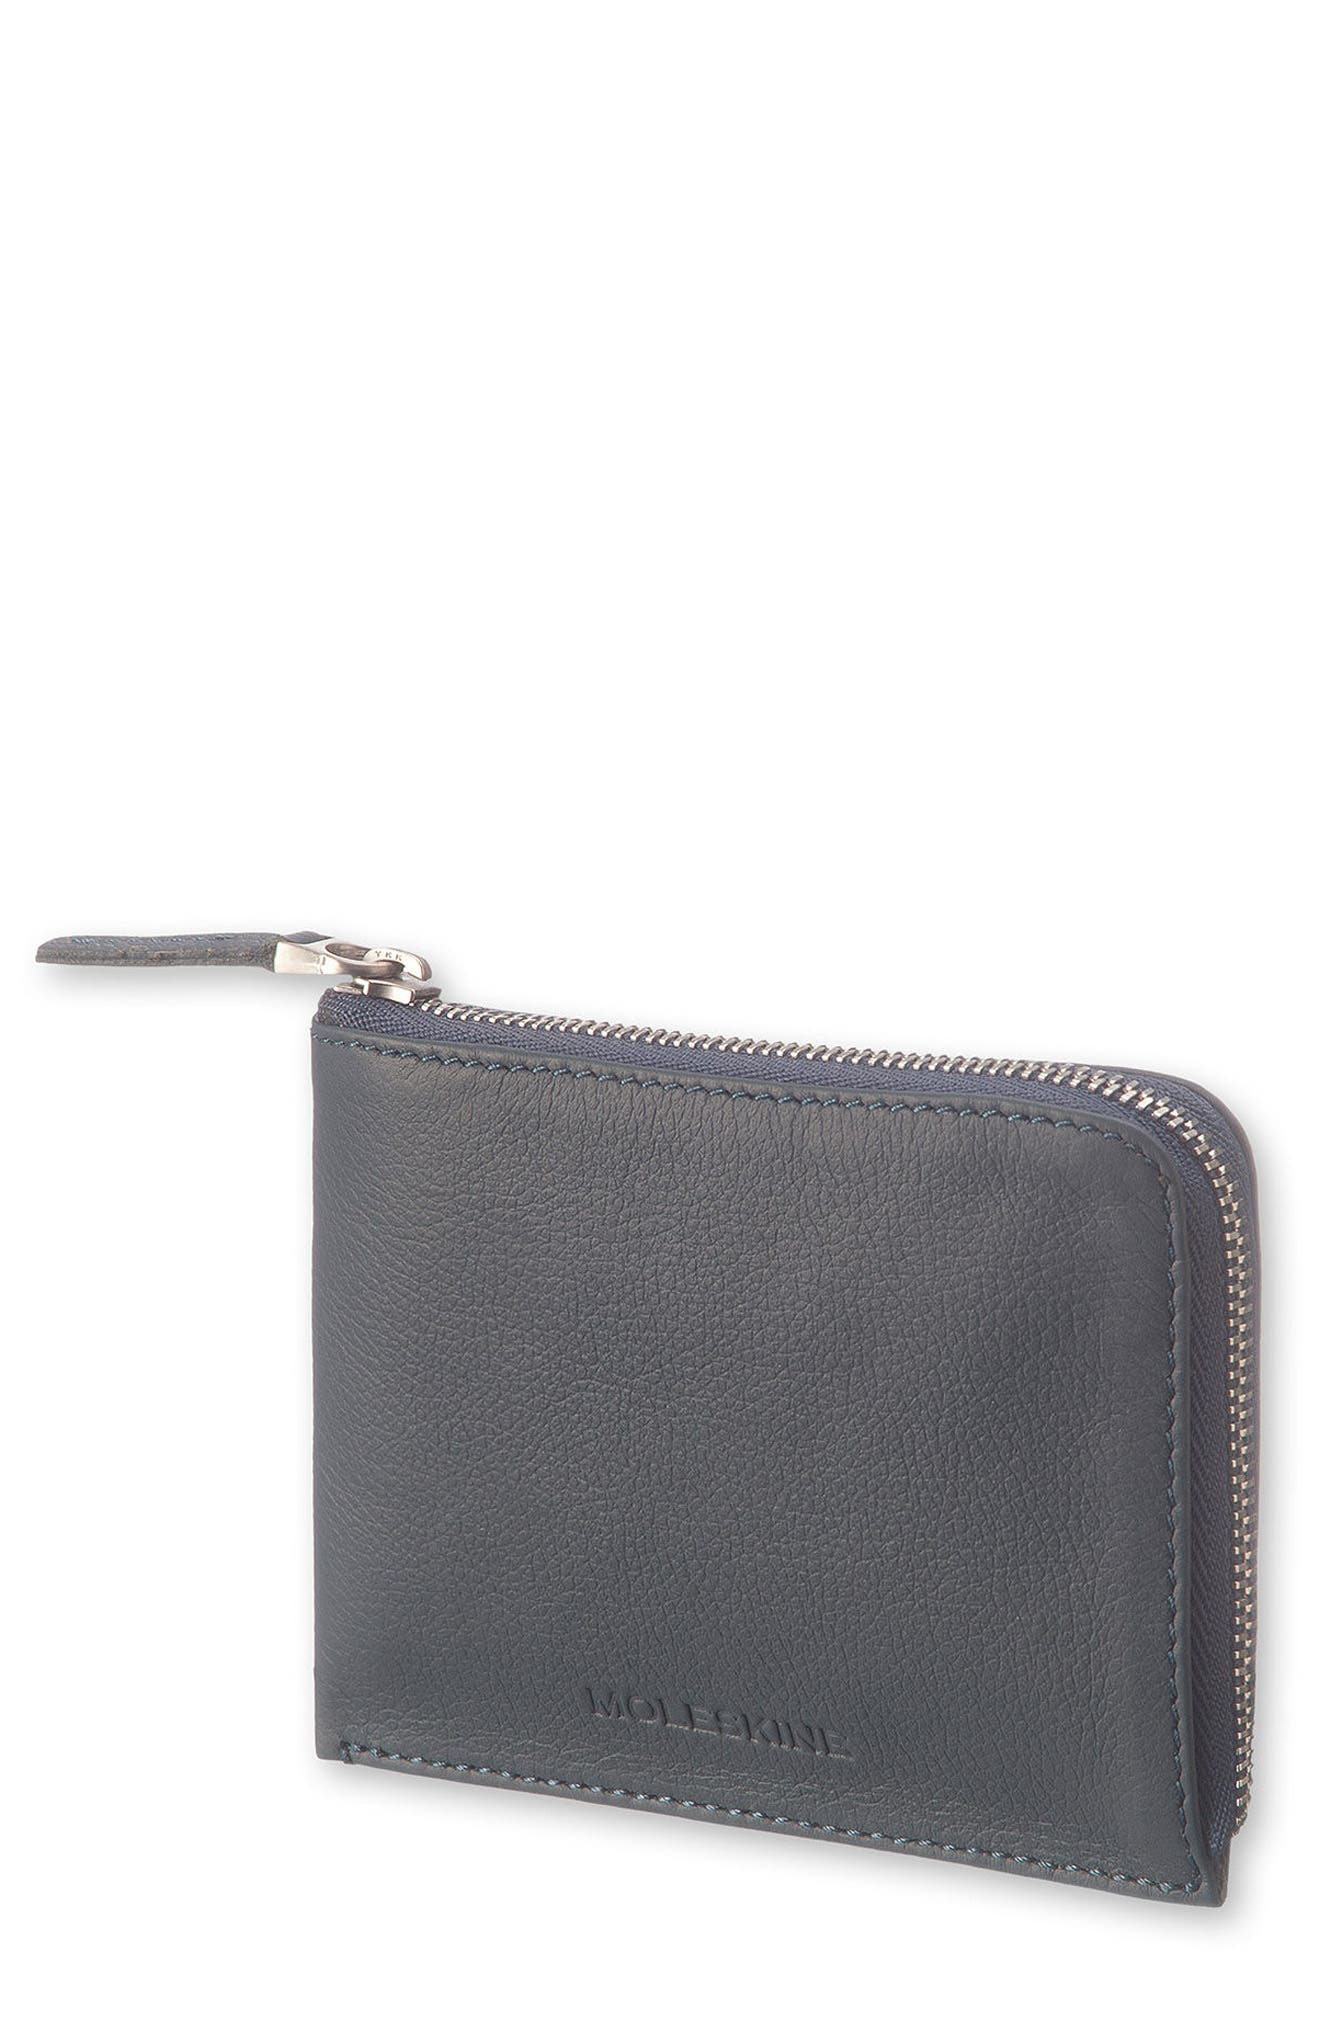 Alternate Image 1 Selected - Moleskine Lineage Leather Zip Wallet